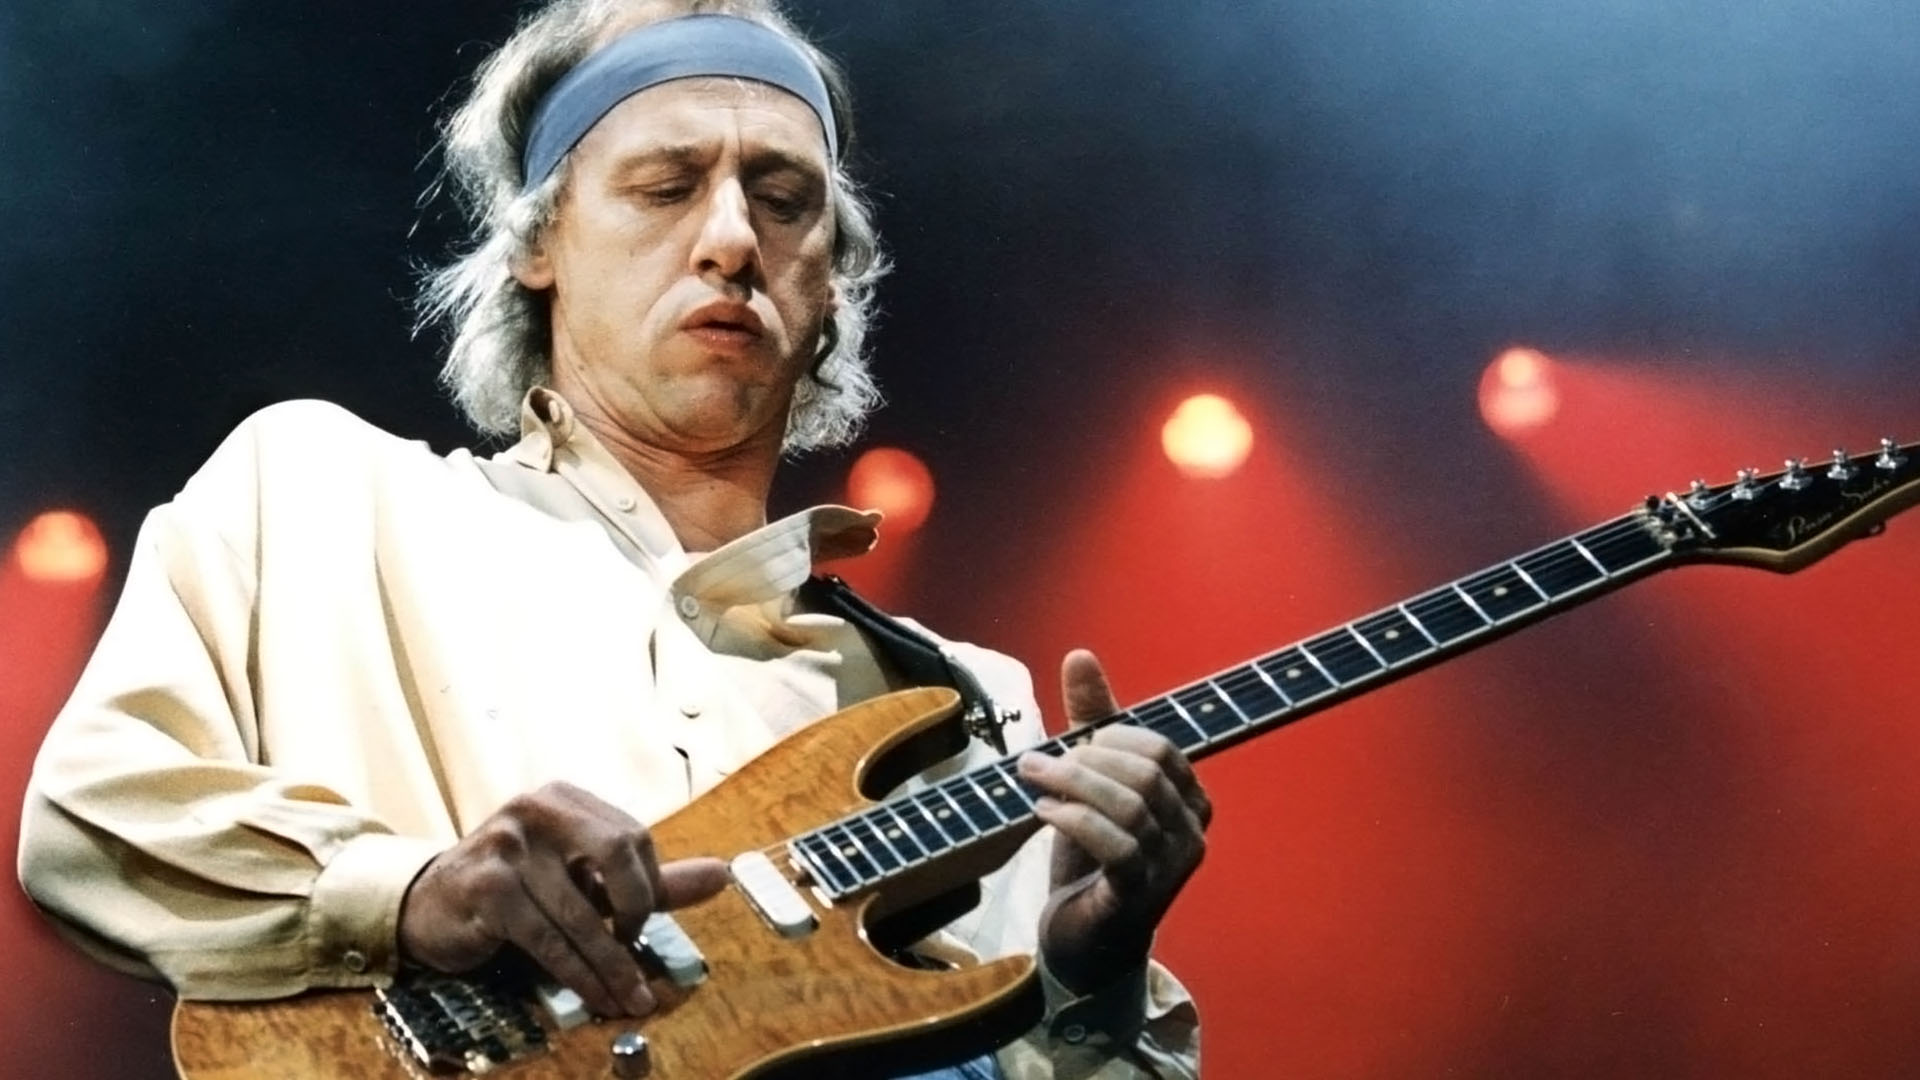 Sultans Of Swing av Dire Straits